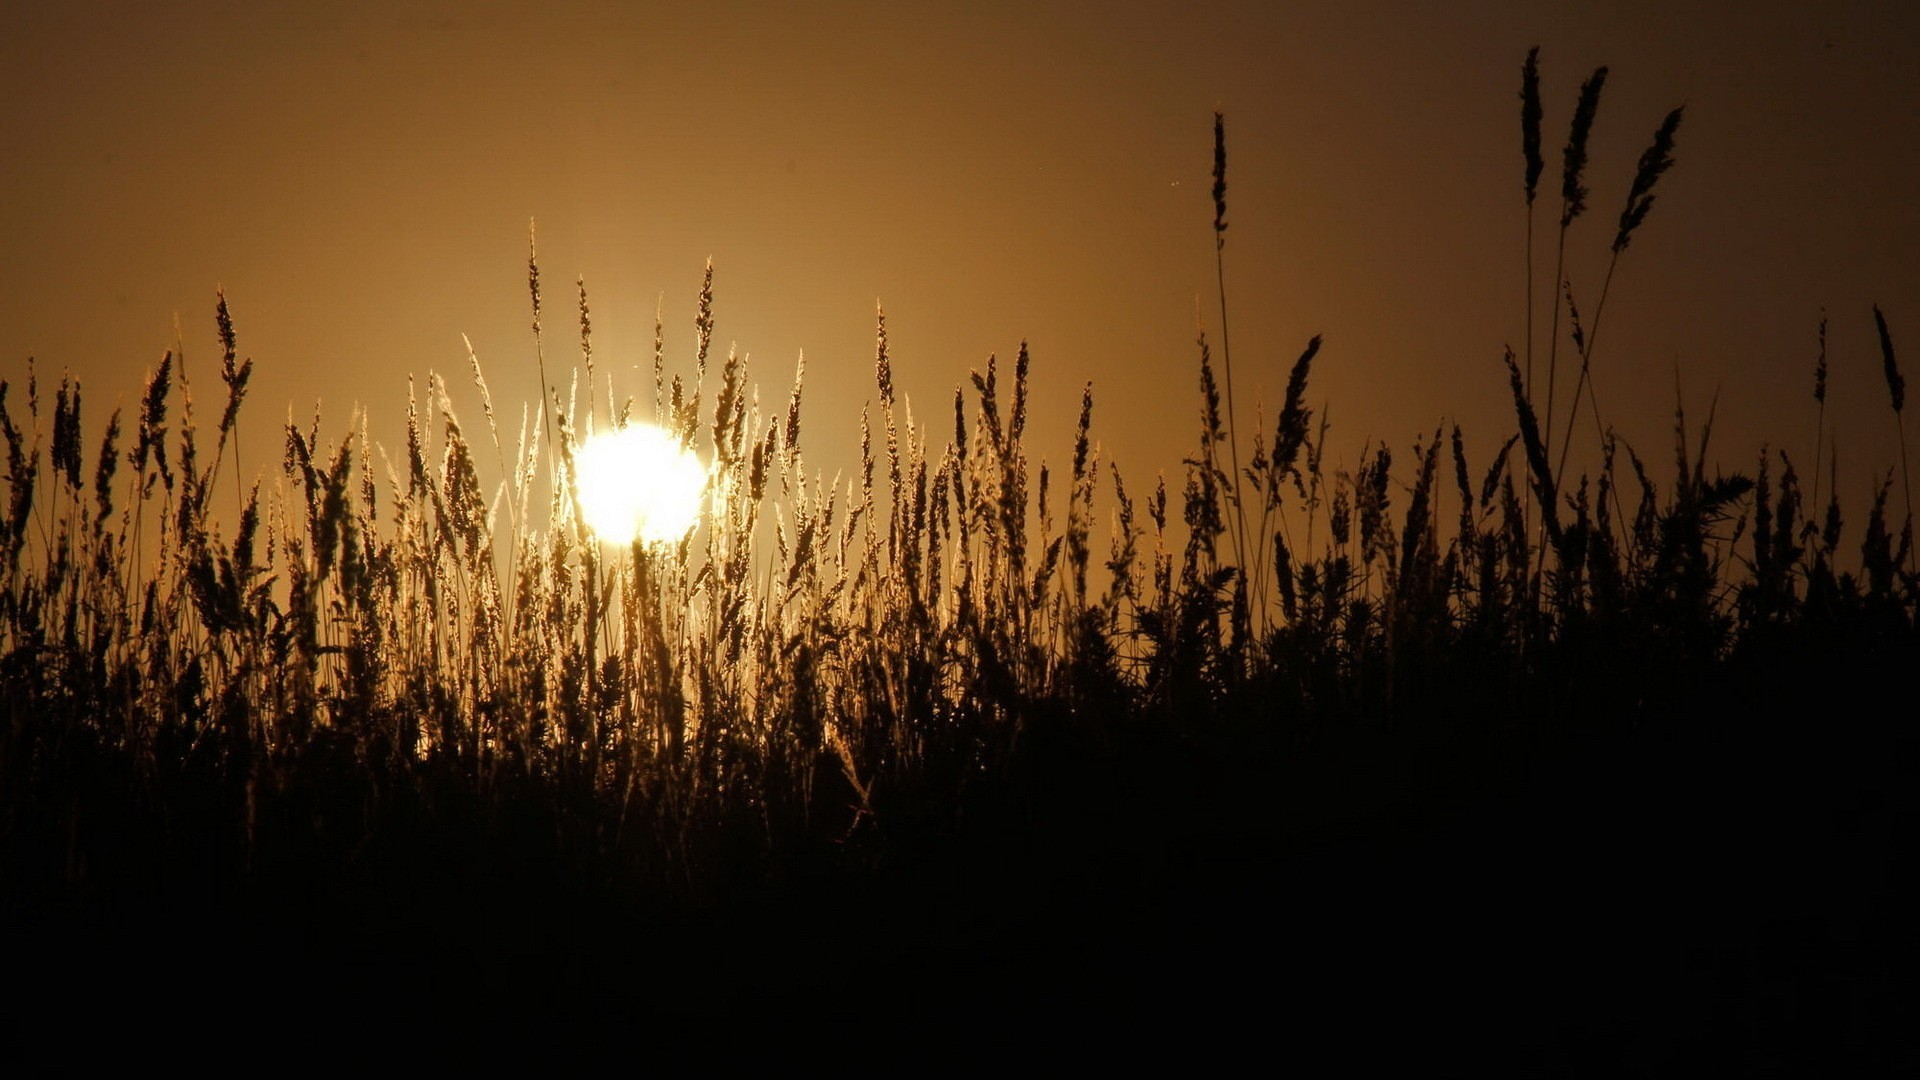 sunset Landscapes wheat spikelets HD Wallpaper